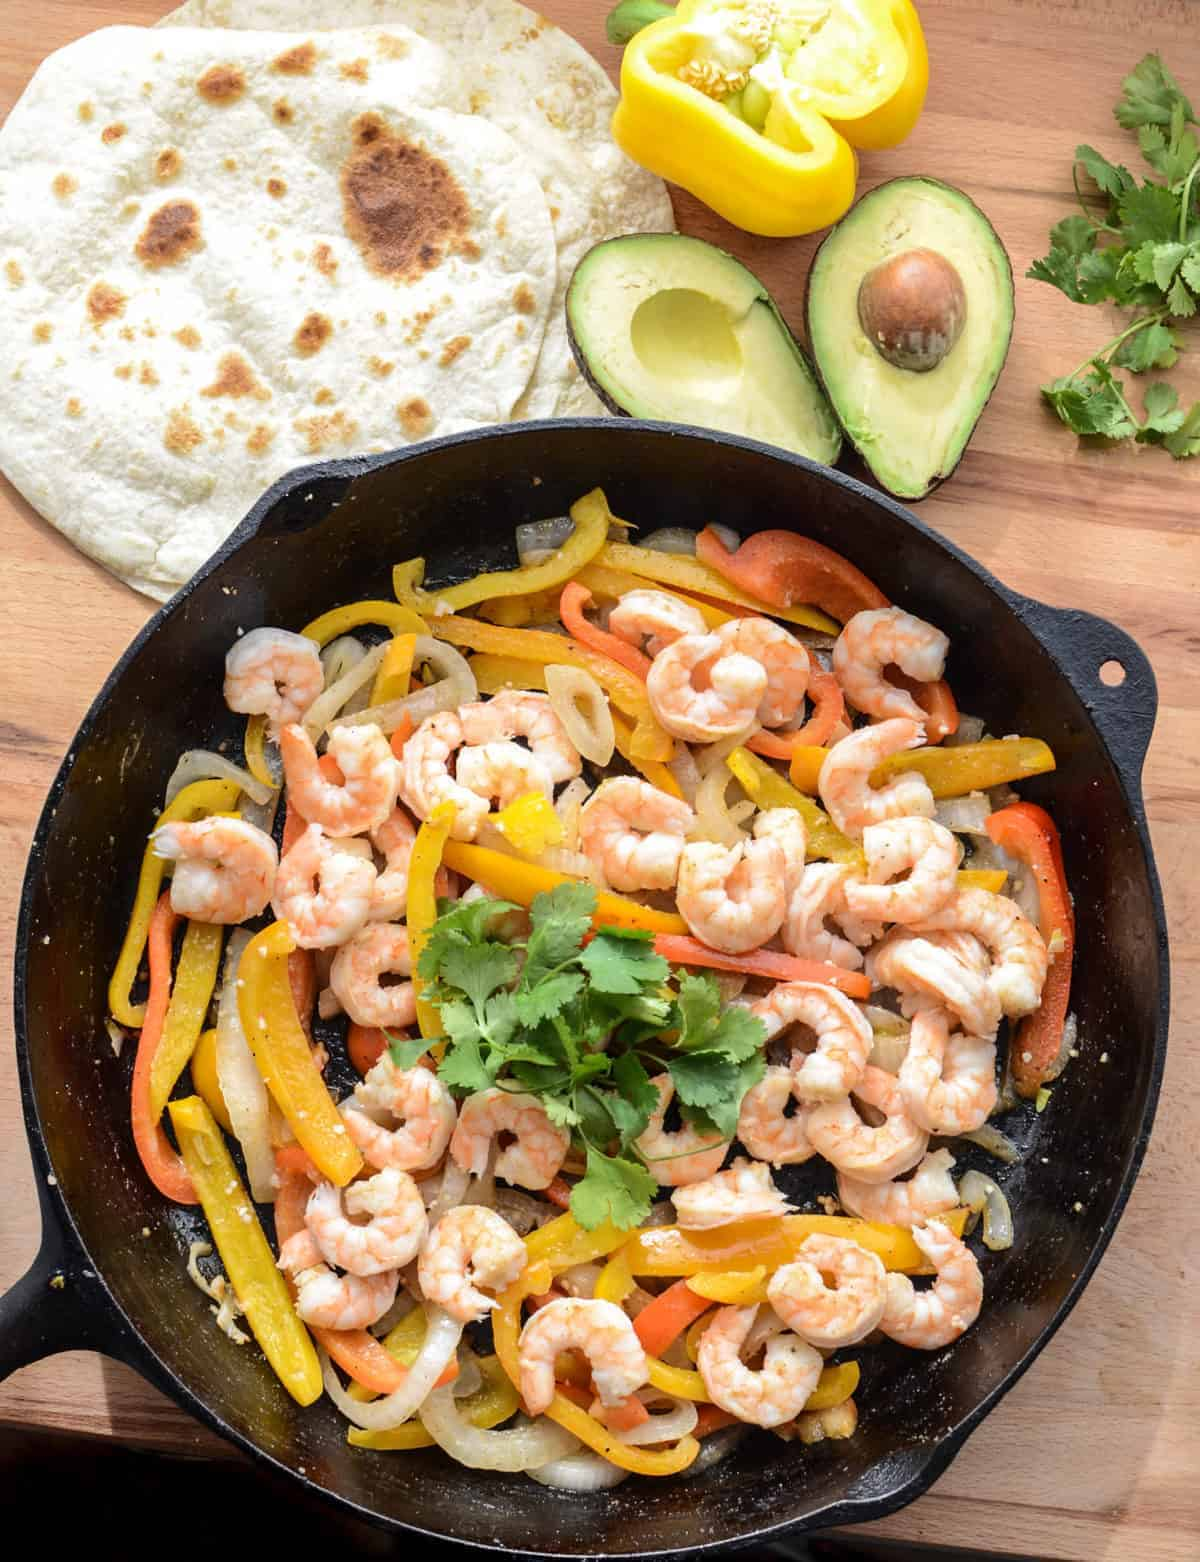 Shrimp fajitas are one of my favorite 20 minute meal ideas that the whole family loves. They come together fast and are full of vegetables!